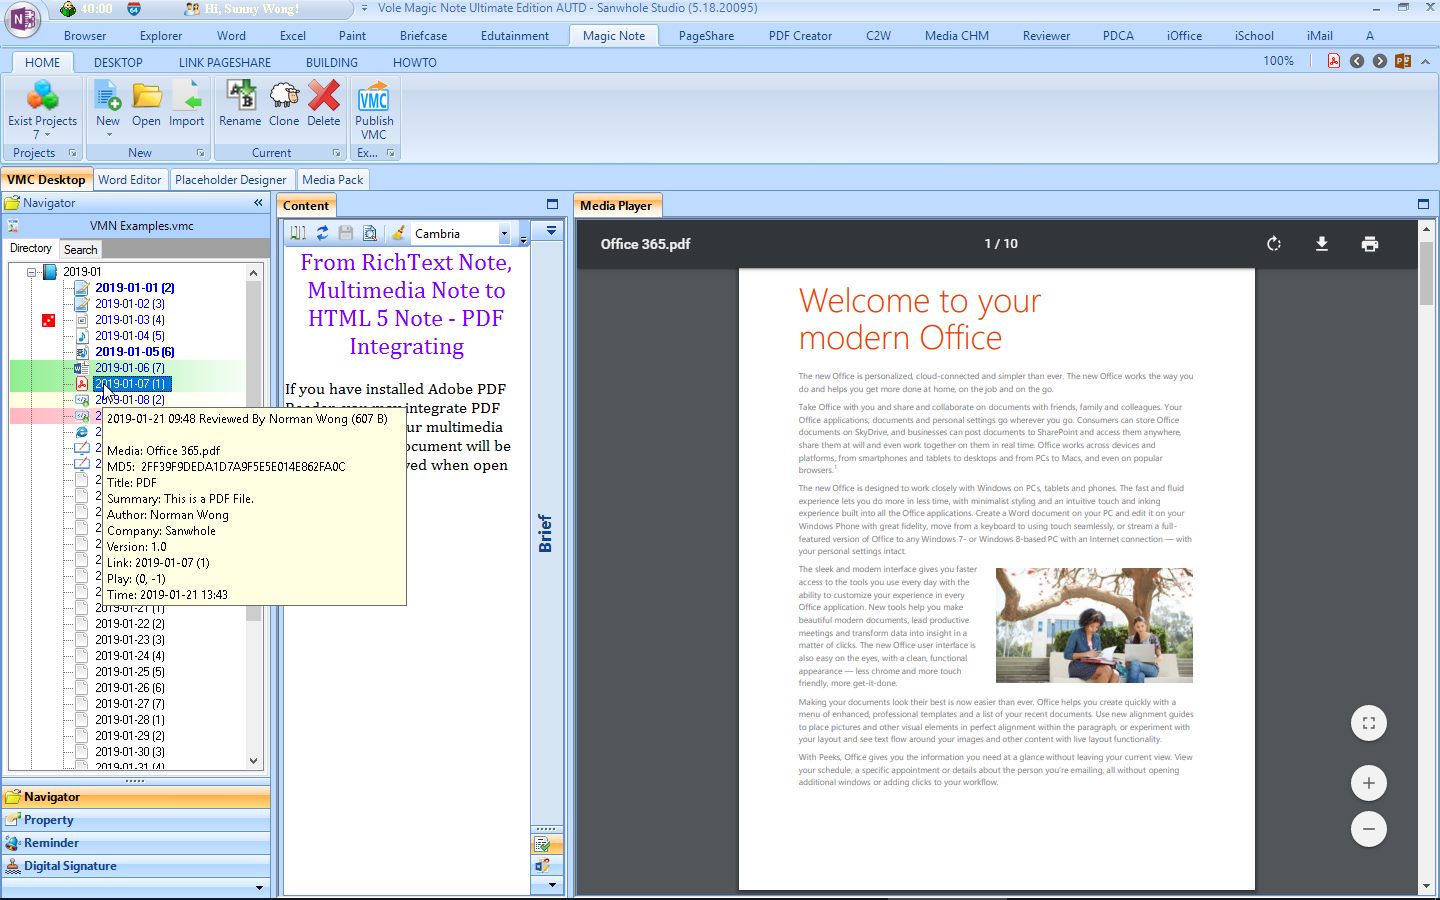 Hobby, Educational & Fun Software, Vole Magic Note Ultimate Edition Screenshot